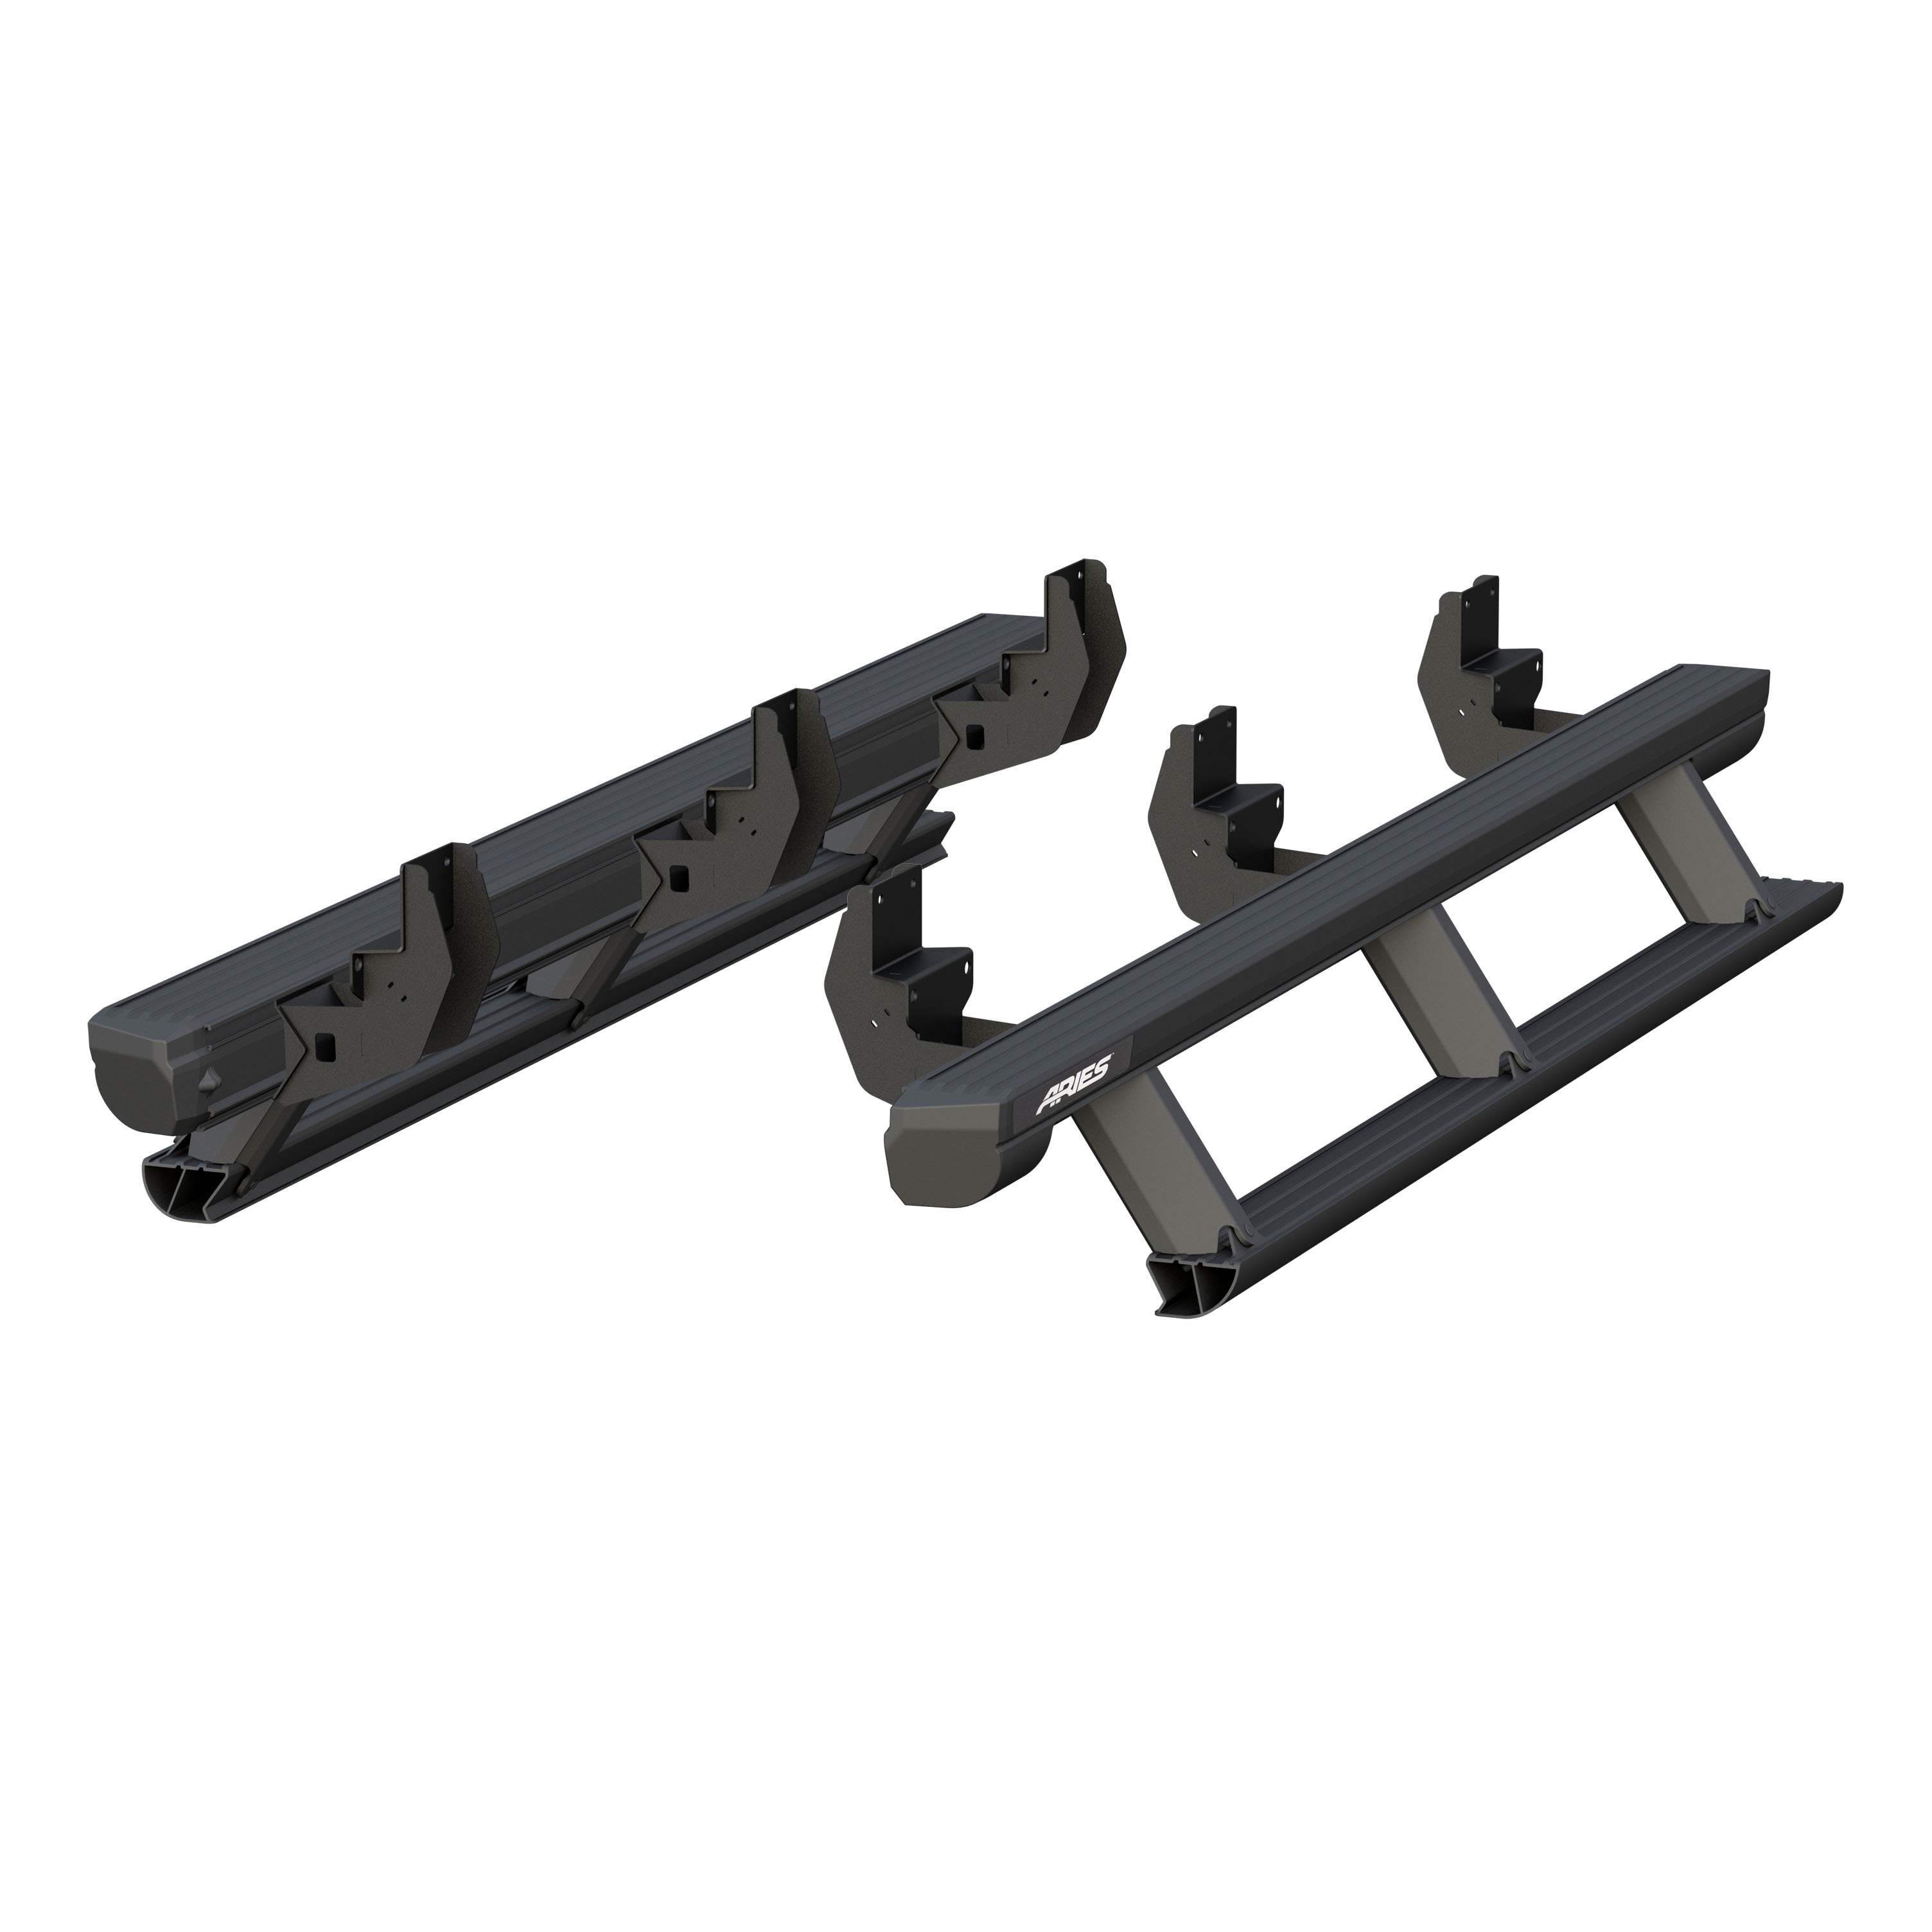 Aries Automotive 3048321 Actiontrac Powered Running Boards With Automated Patented Step-Within-A-Step - Black Powder-Coated Aluminum (1 Pair W/ Brackets)